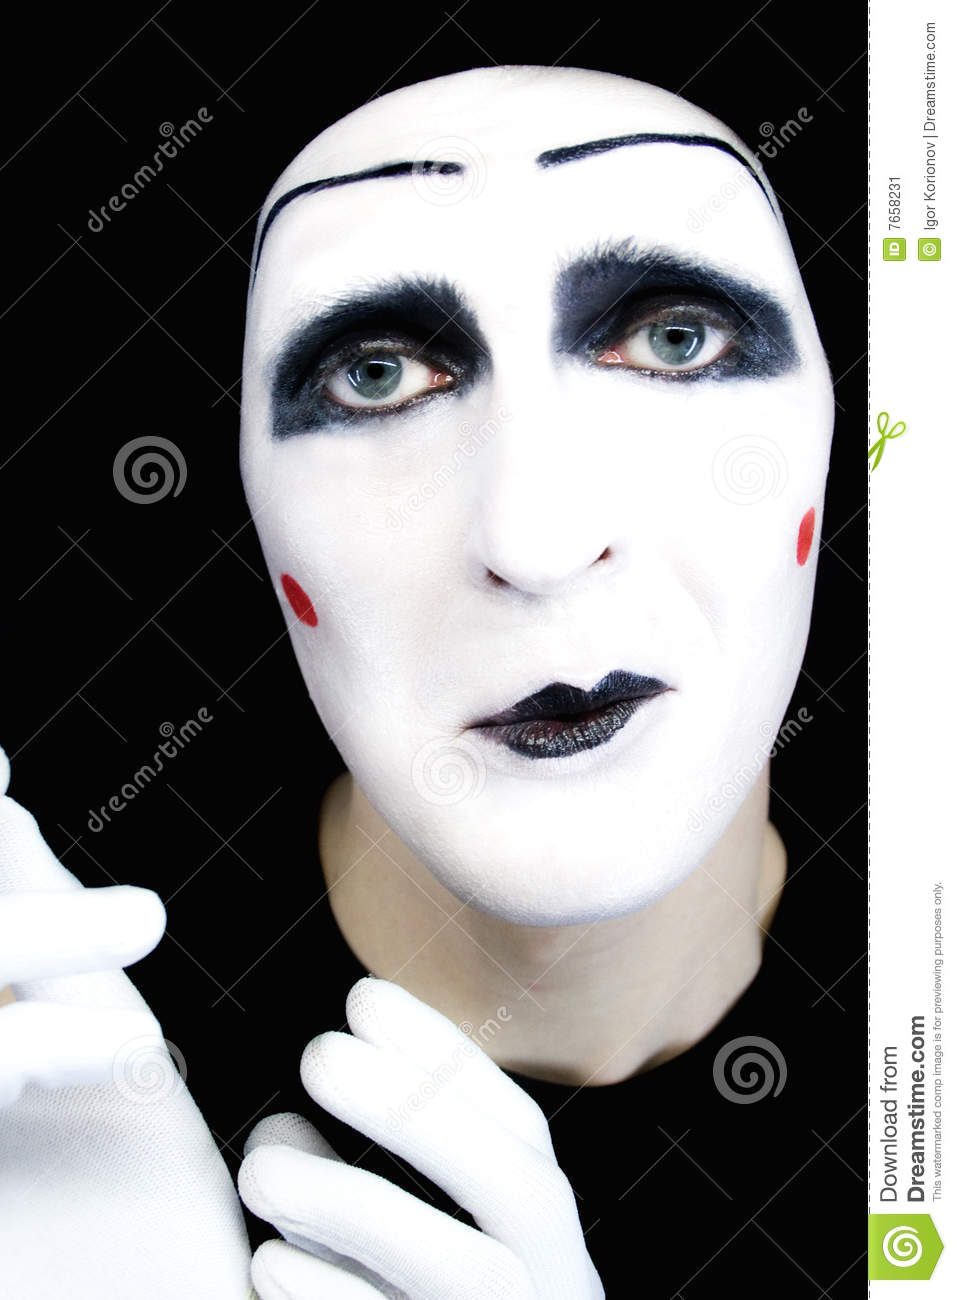 d0a1fc92e86 Portrait Of Sad Mime In White Gloves Stock Image - Image of mimic ...